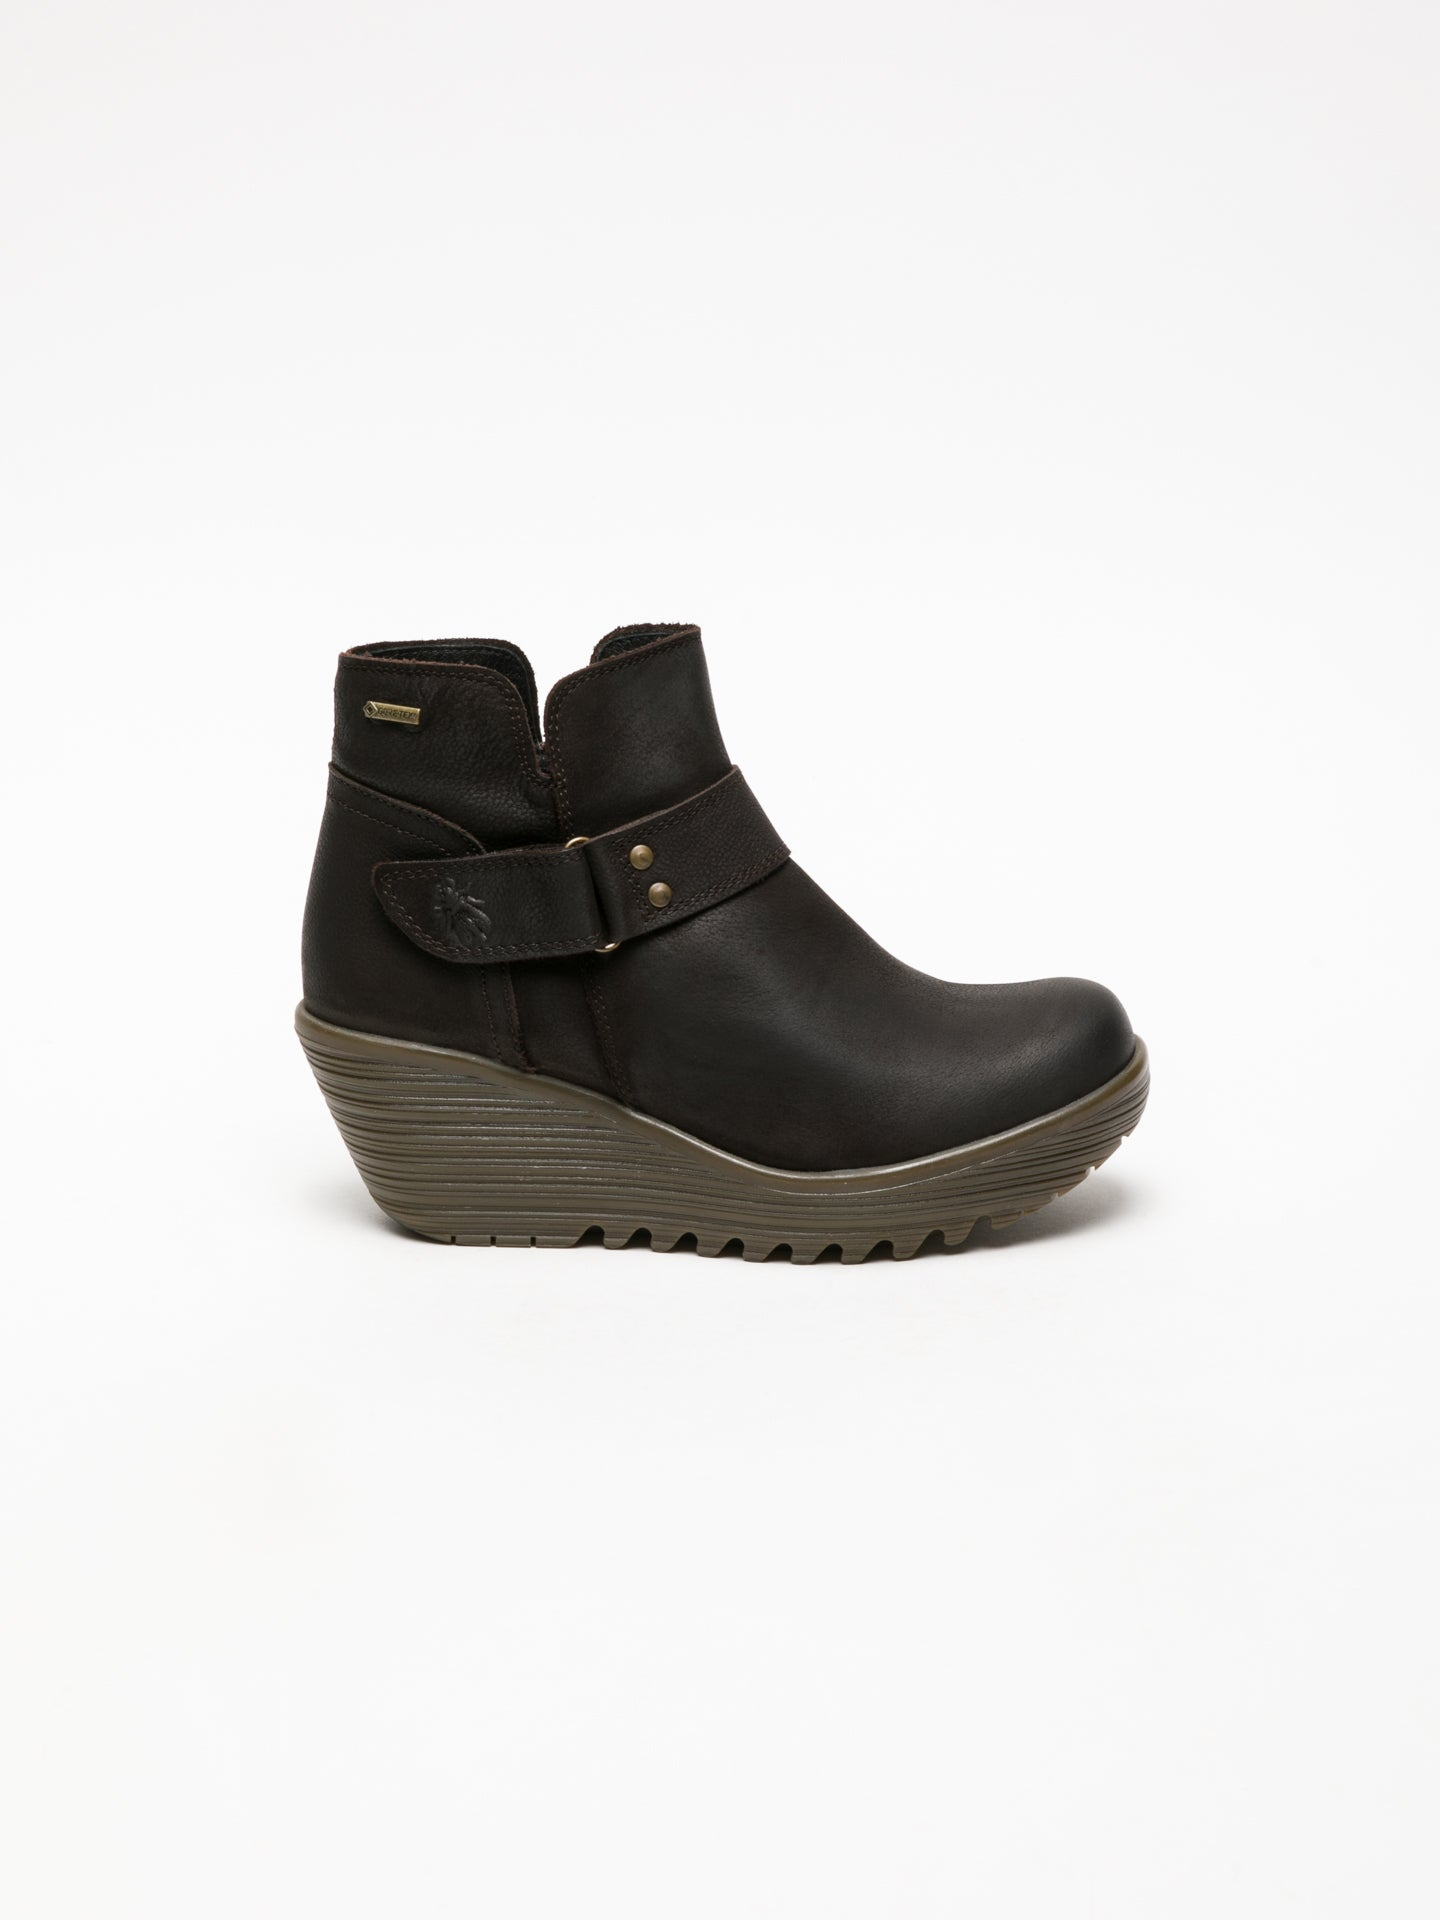 Fly London Brown Velcro Ankle Boots